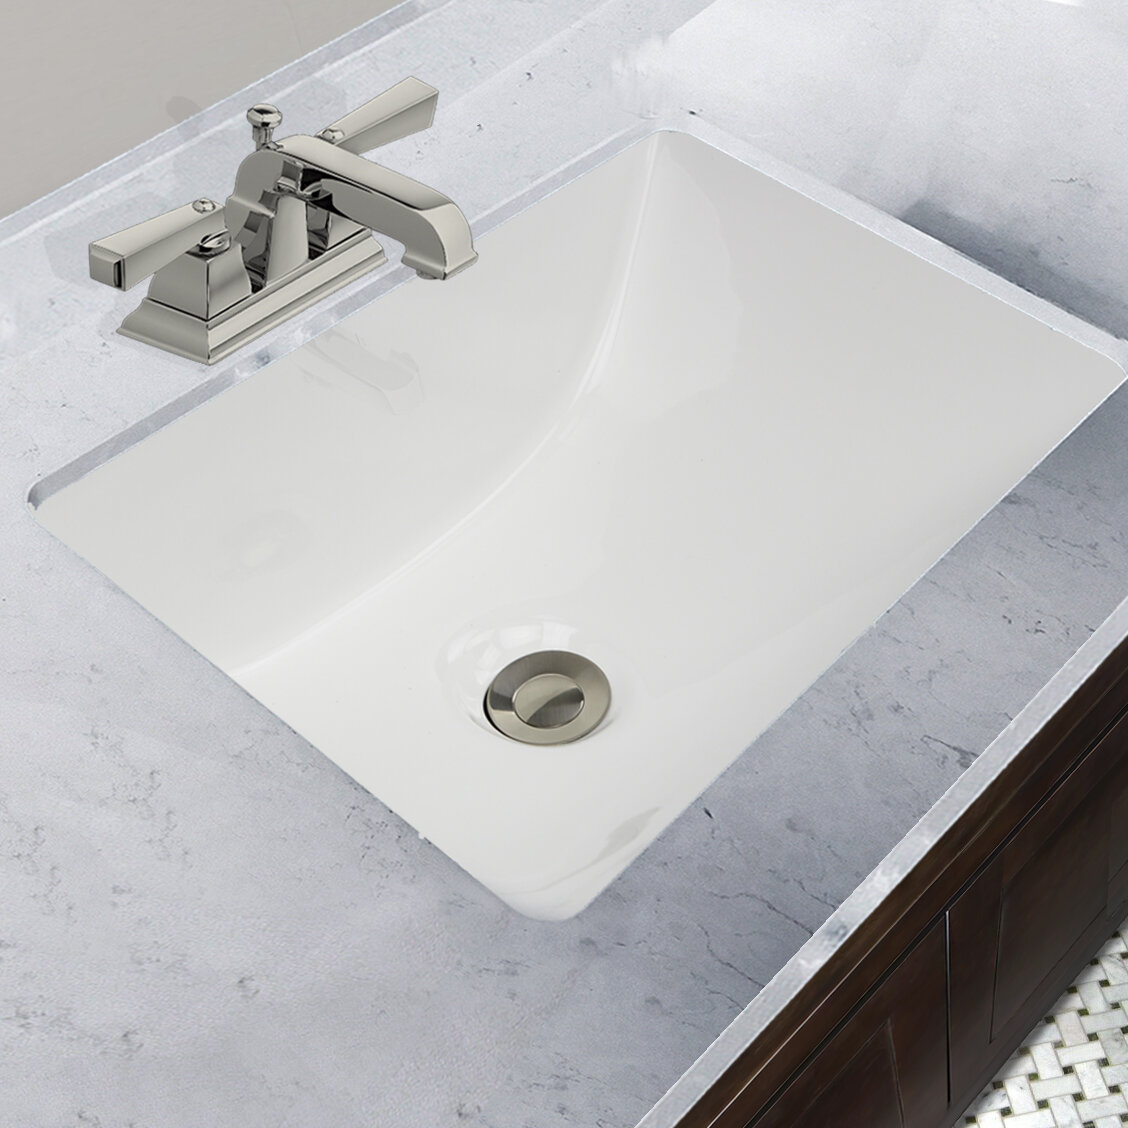 Nantucket Sinks | Wayfair